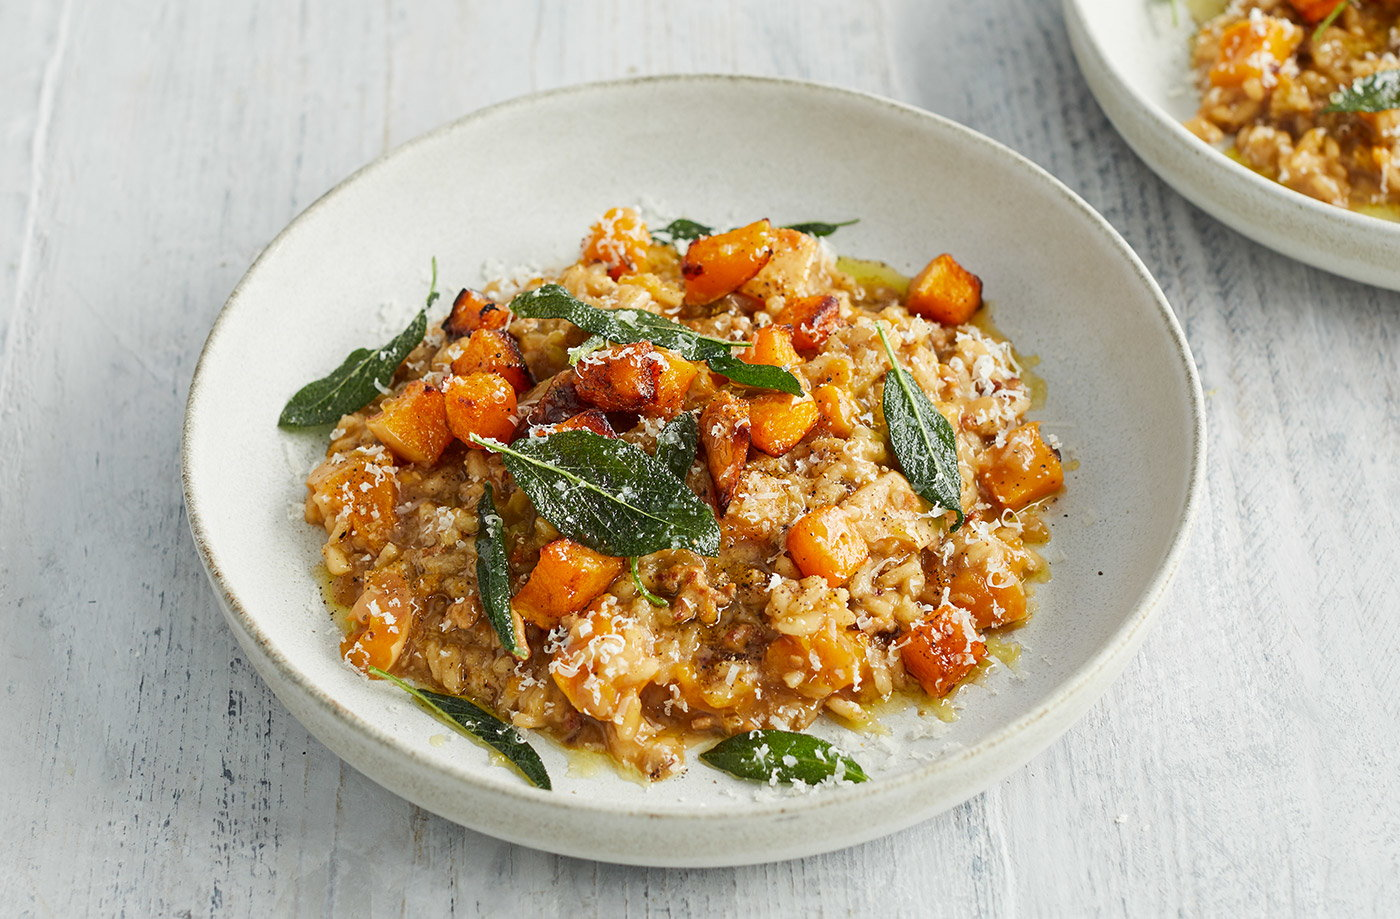 Pork and squash risotto recipe